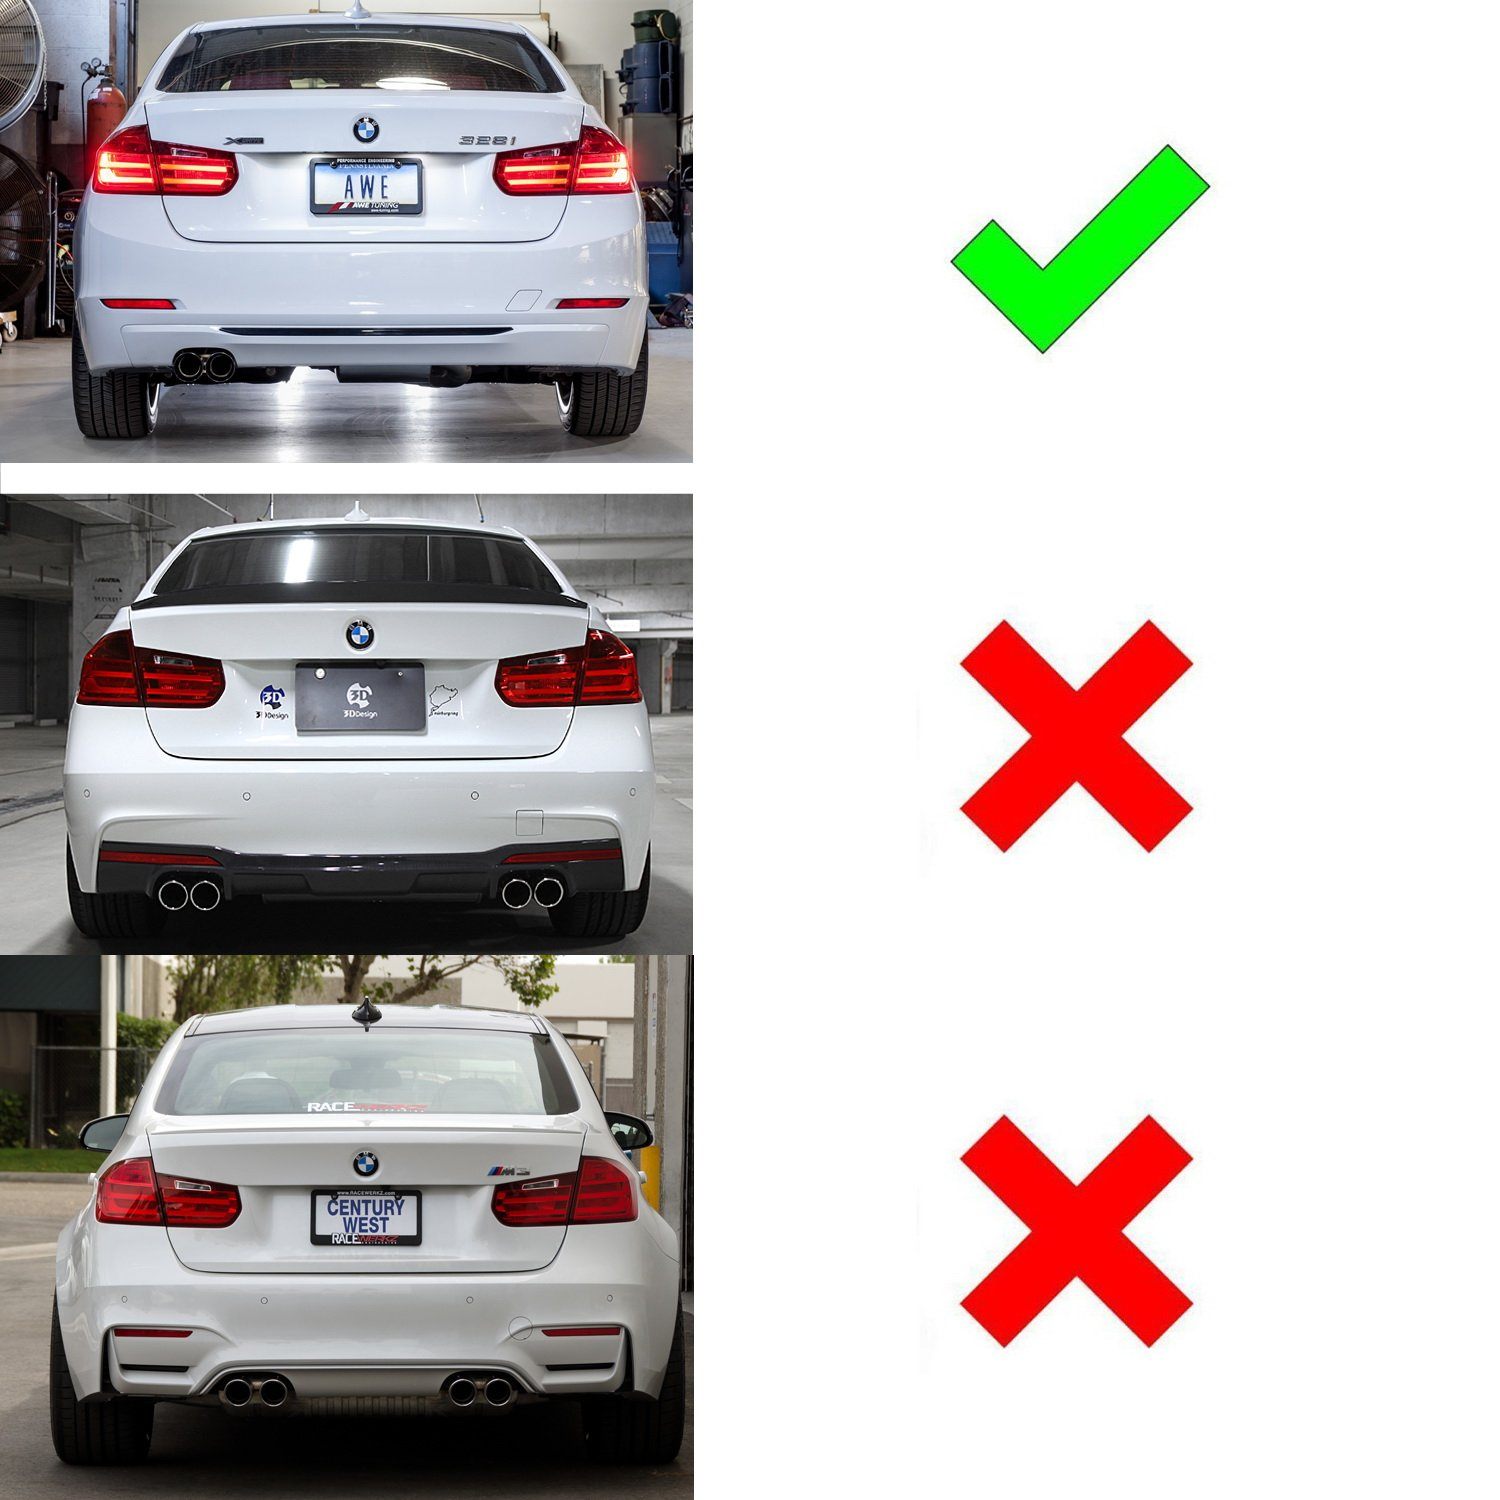 iJDMTOY Smoked Lens Rear Bumper Reflector Lenses For BMW F30 F31 F32 F33 3 4 Series Regular Bumper OE-Spec LH RH Assembly Will NOT Fit Sports Bumper or M3//M4